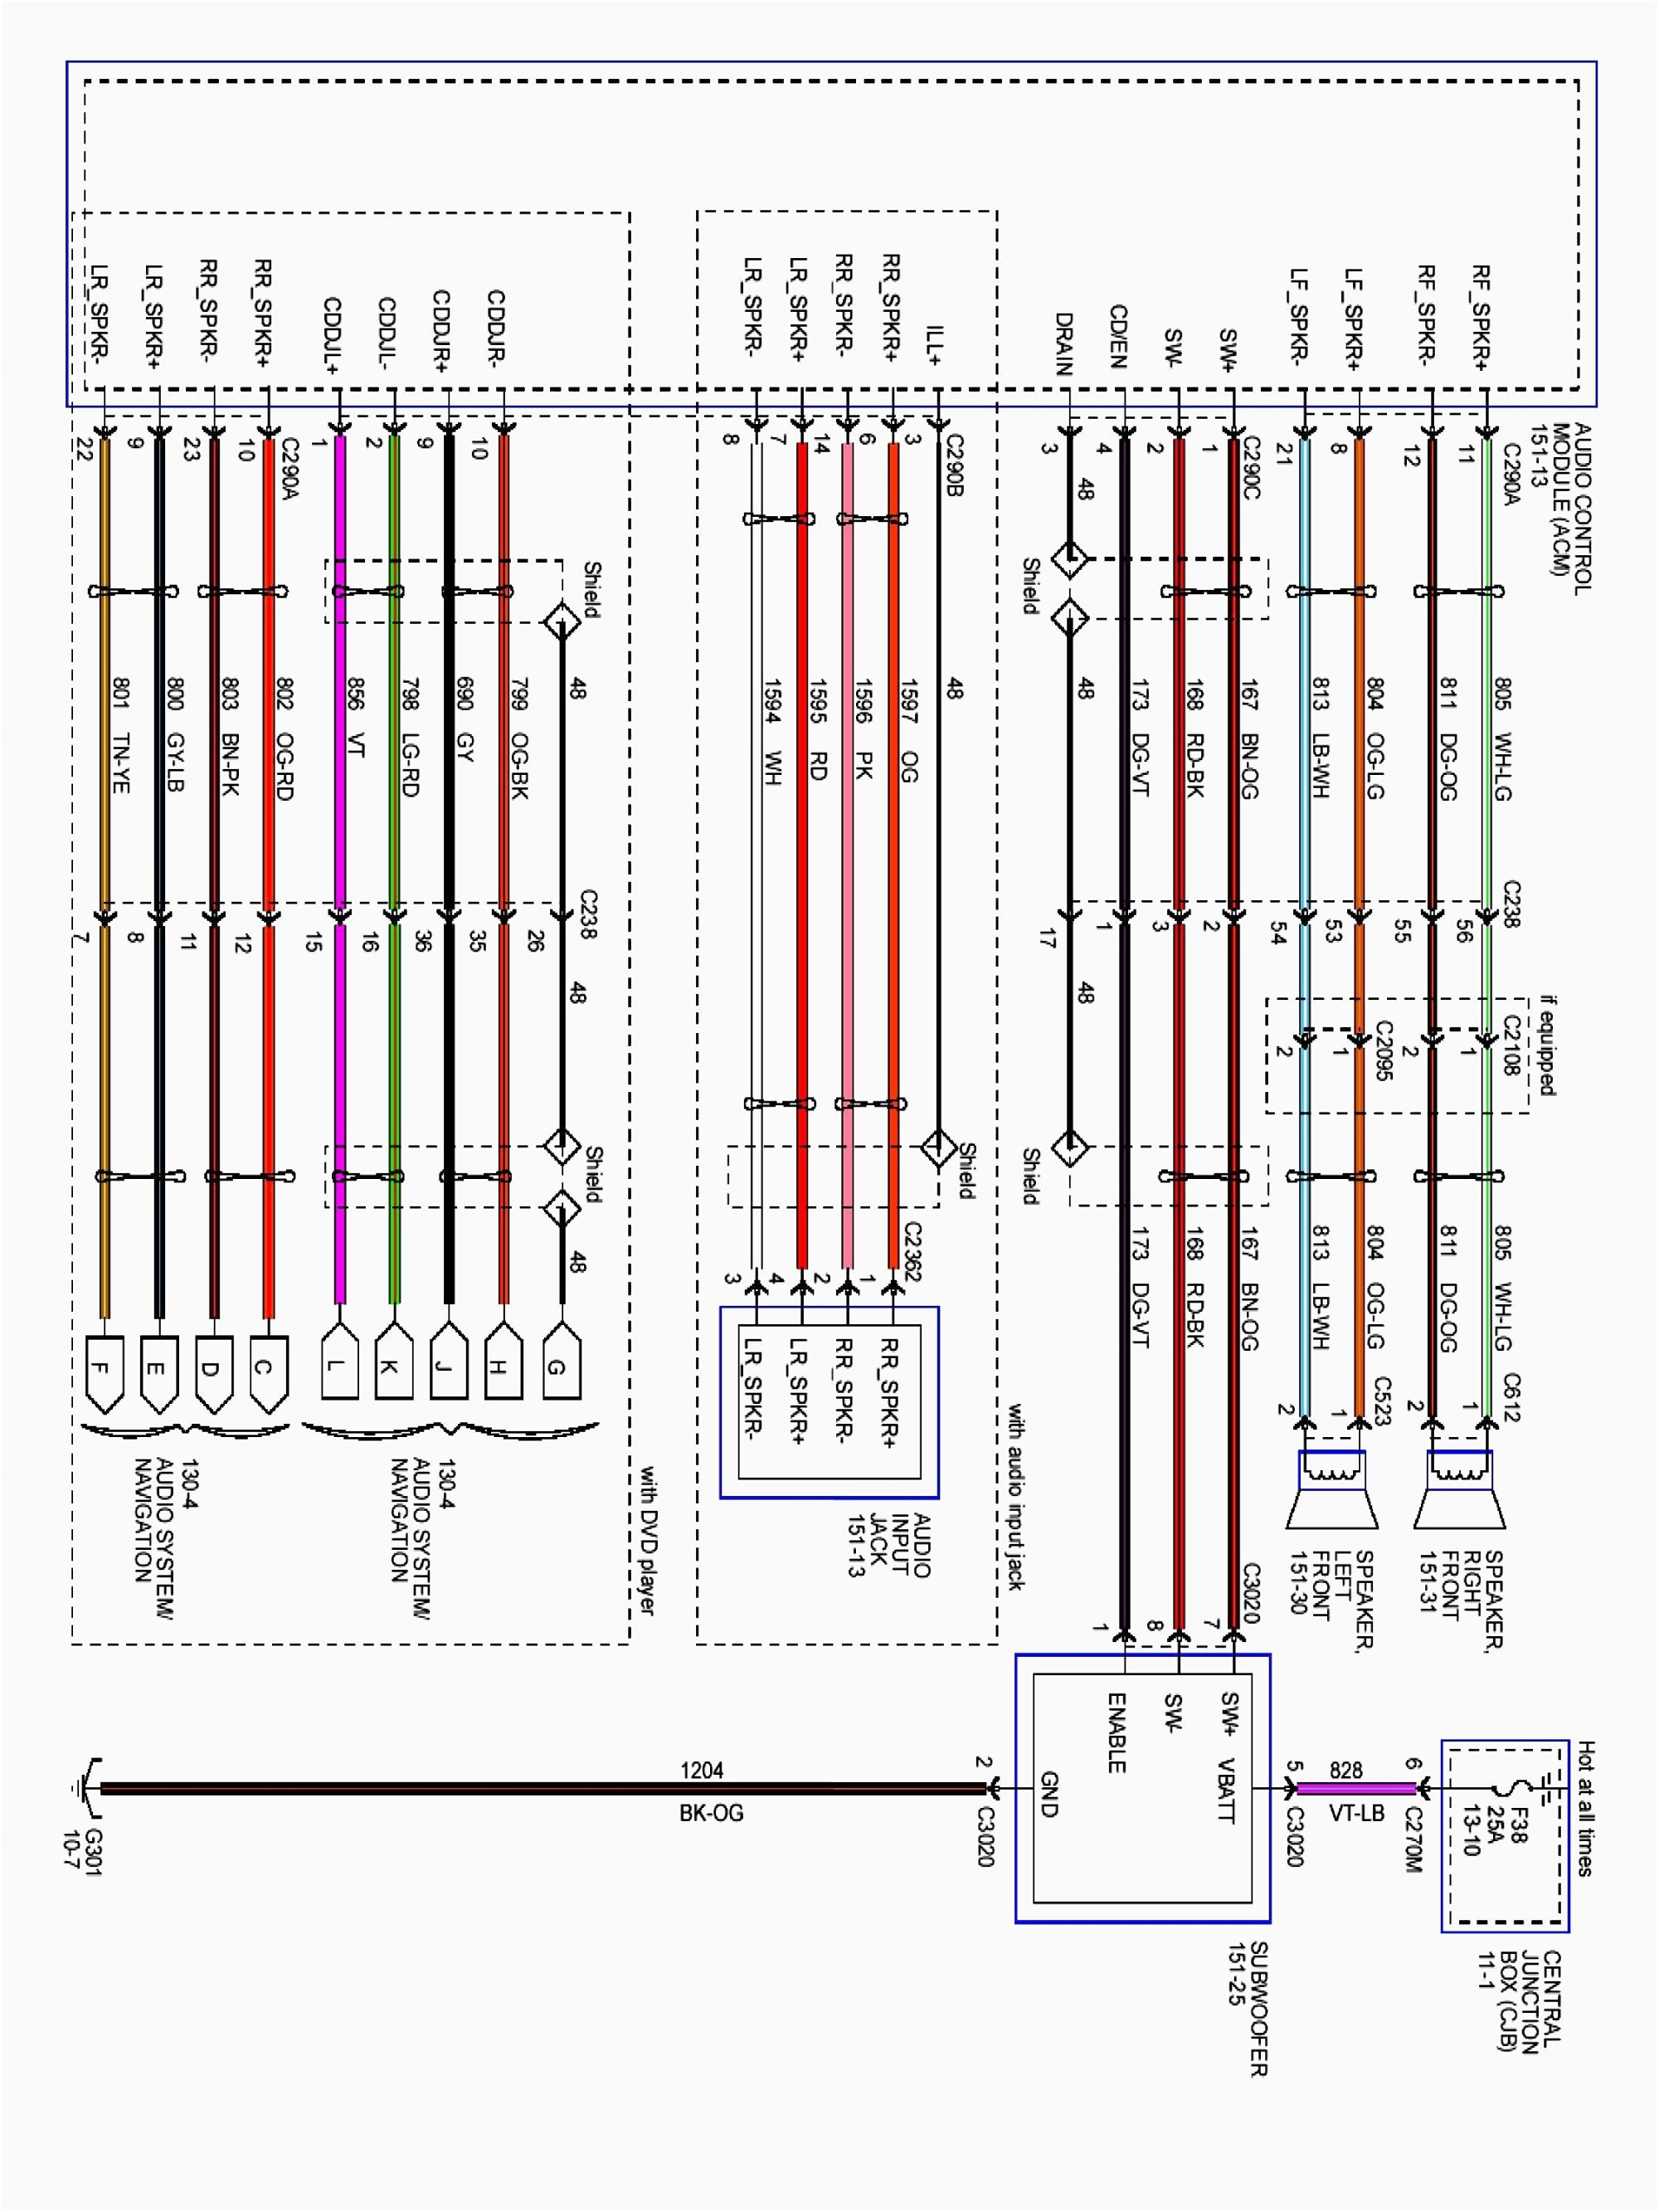 hight resolution of 2008 ford f 150 wiring diagram wiring diagram used 2008 ford f550 wiring diagram dlc wiring